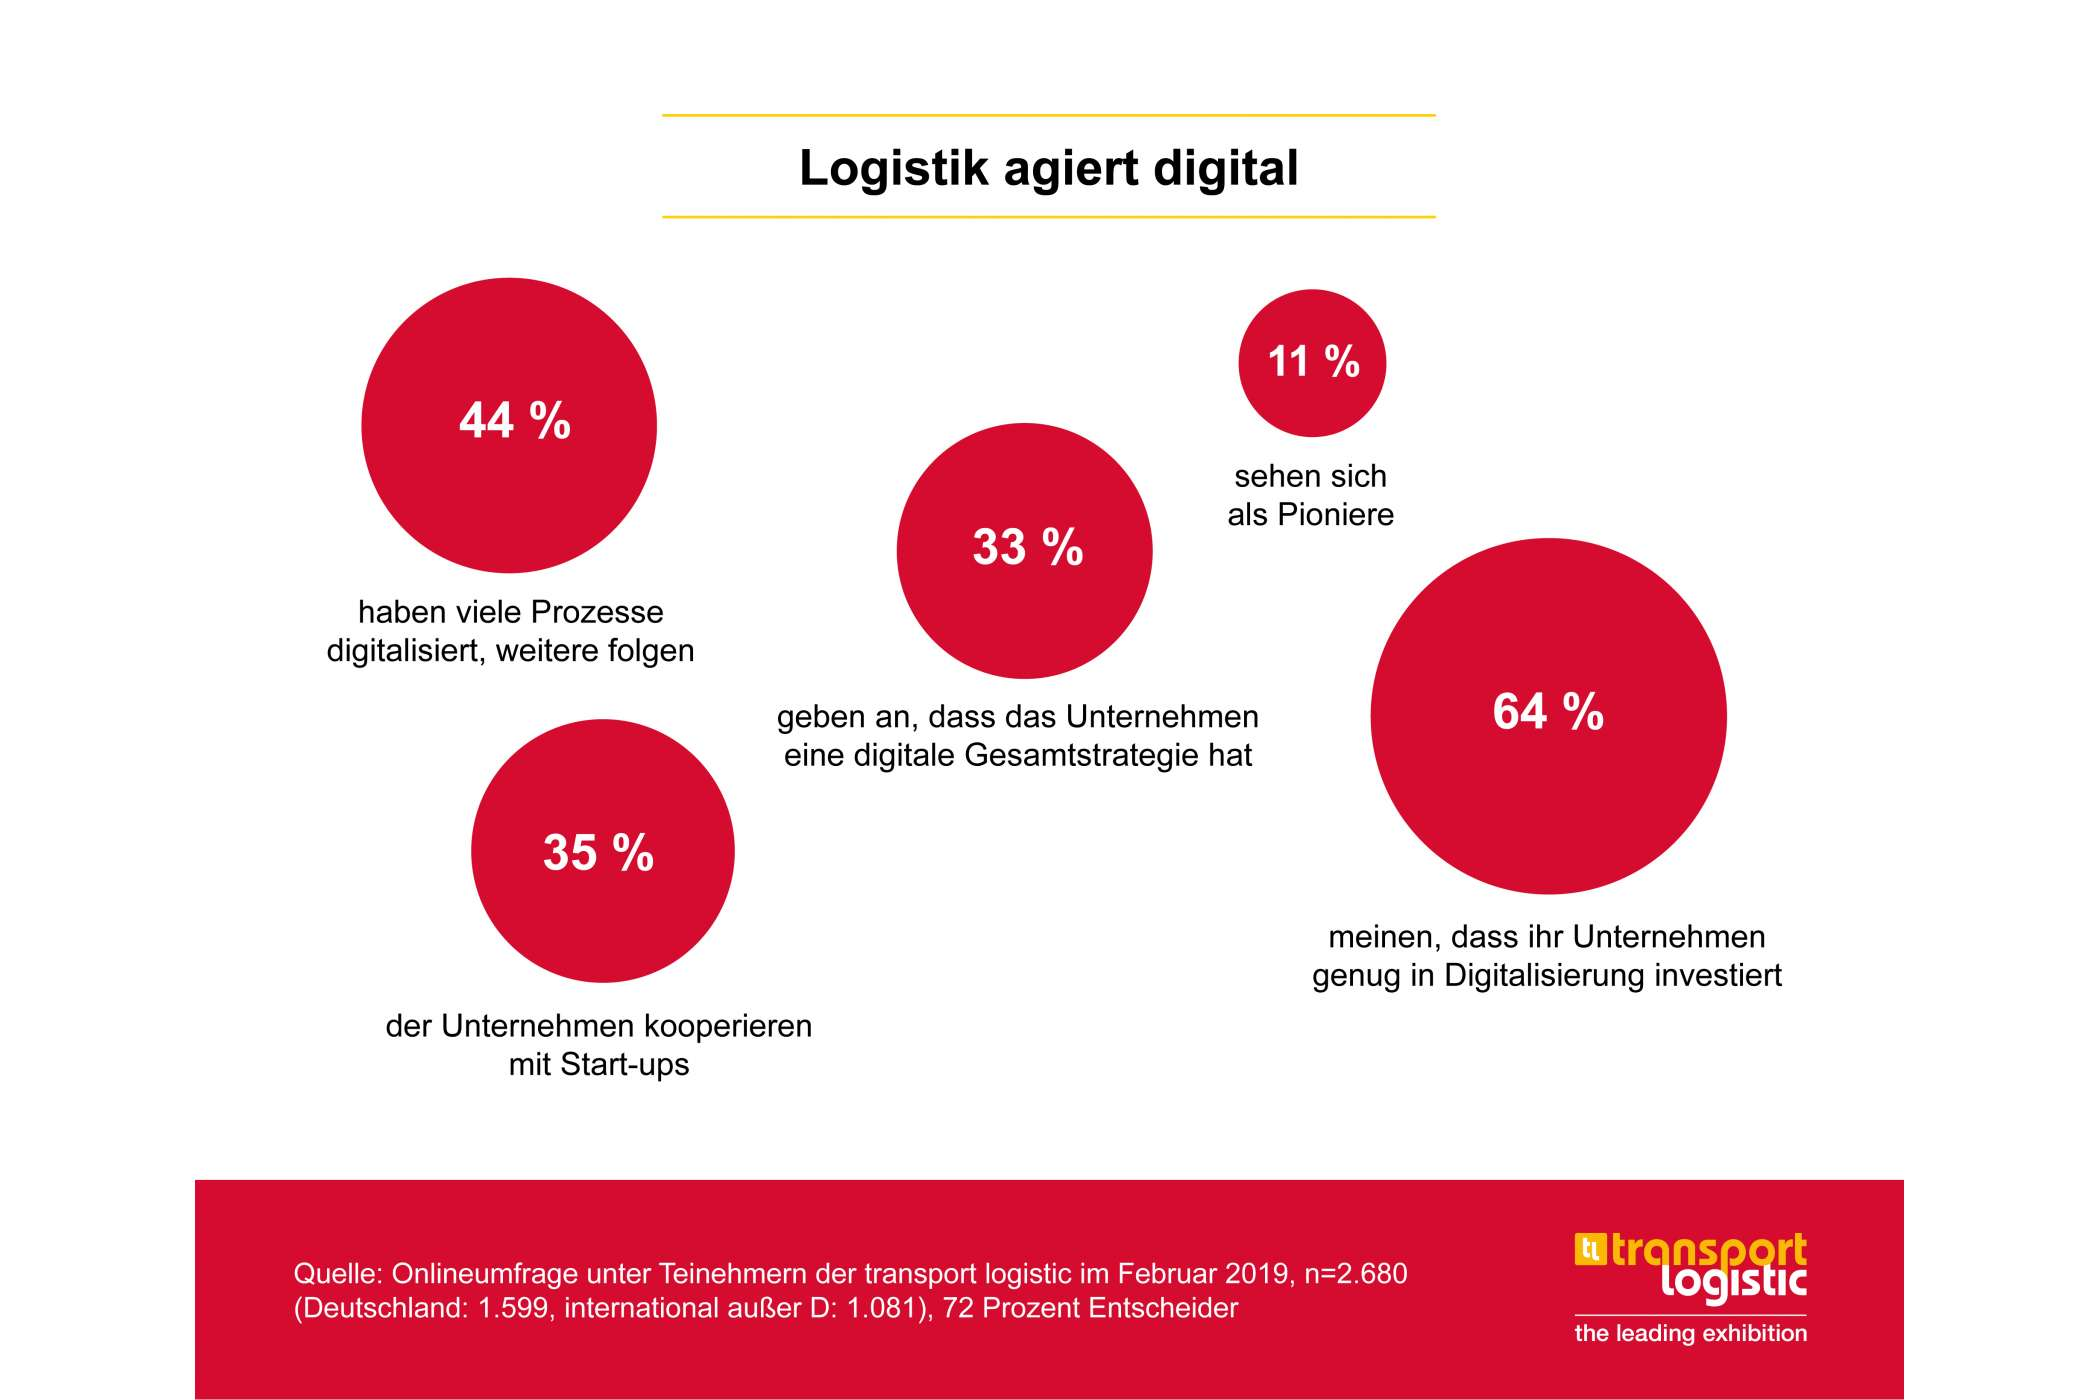 Die Logistik wird digital. (Quelle: transport logistic)